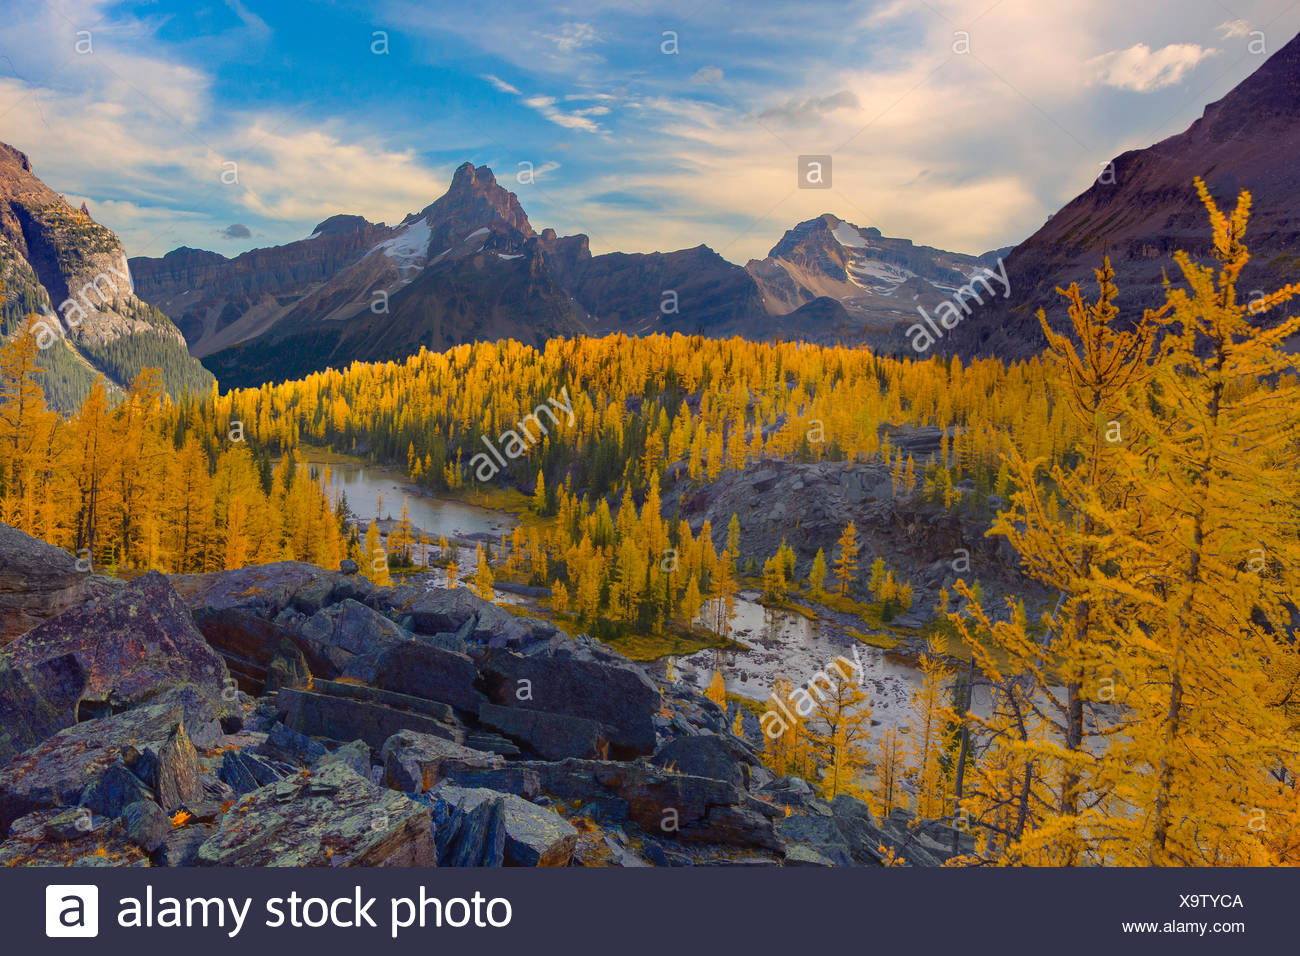 Canada, Alberta, Banff, National Park, Larches, Peaks, golden hour, sunset, dramatic light, fall colour, autumn, trees, forest, Stock Photo